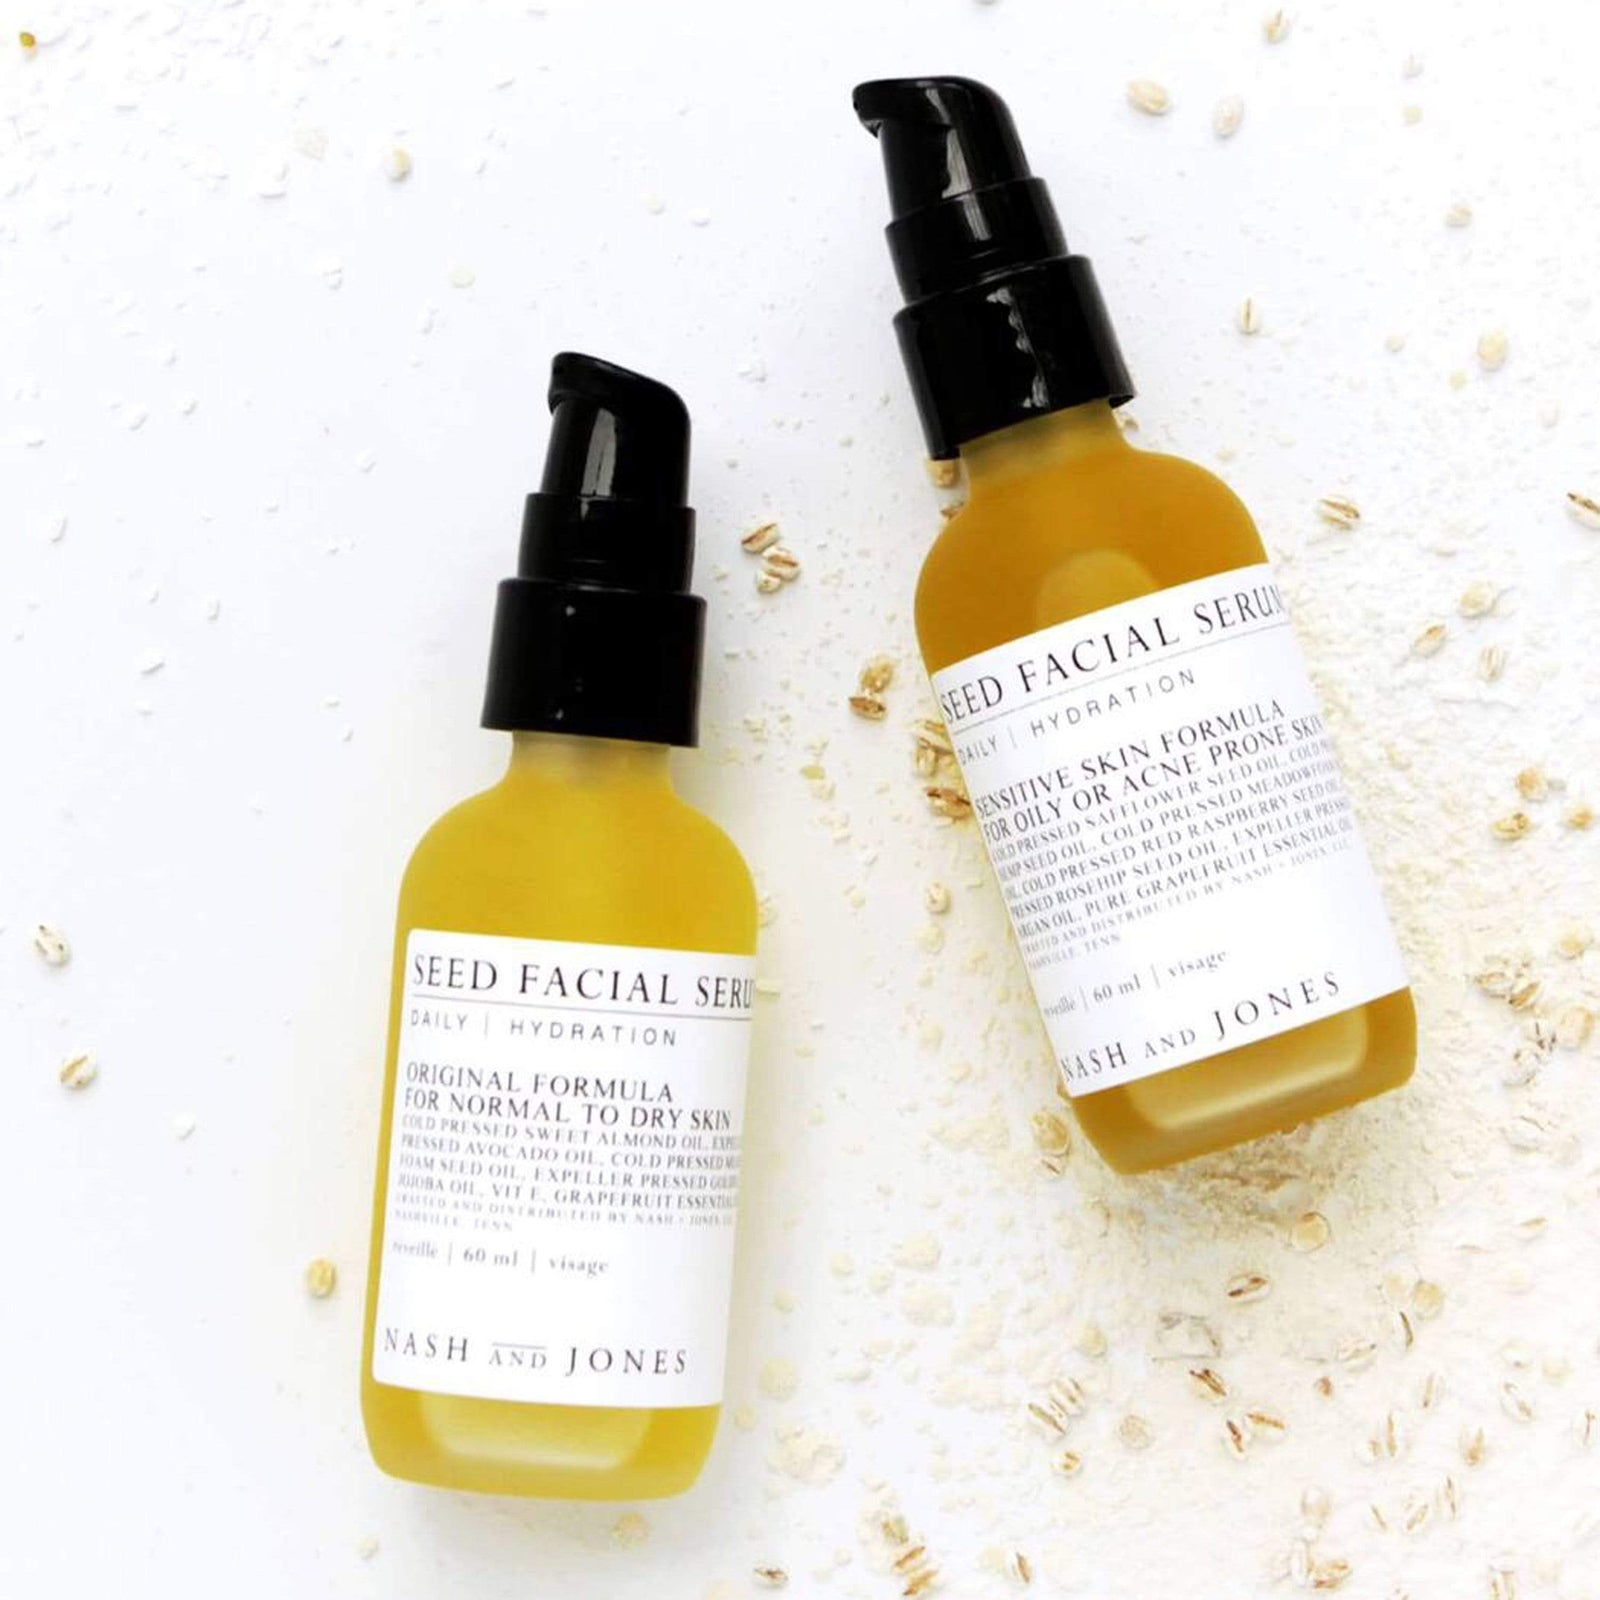 Nash and Jones Body Seed Facial Serum